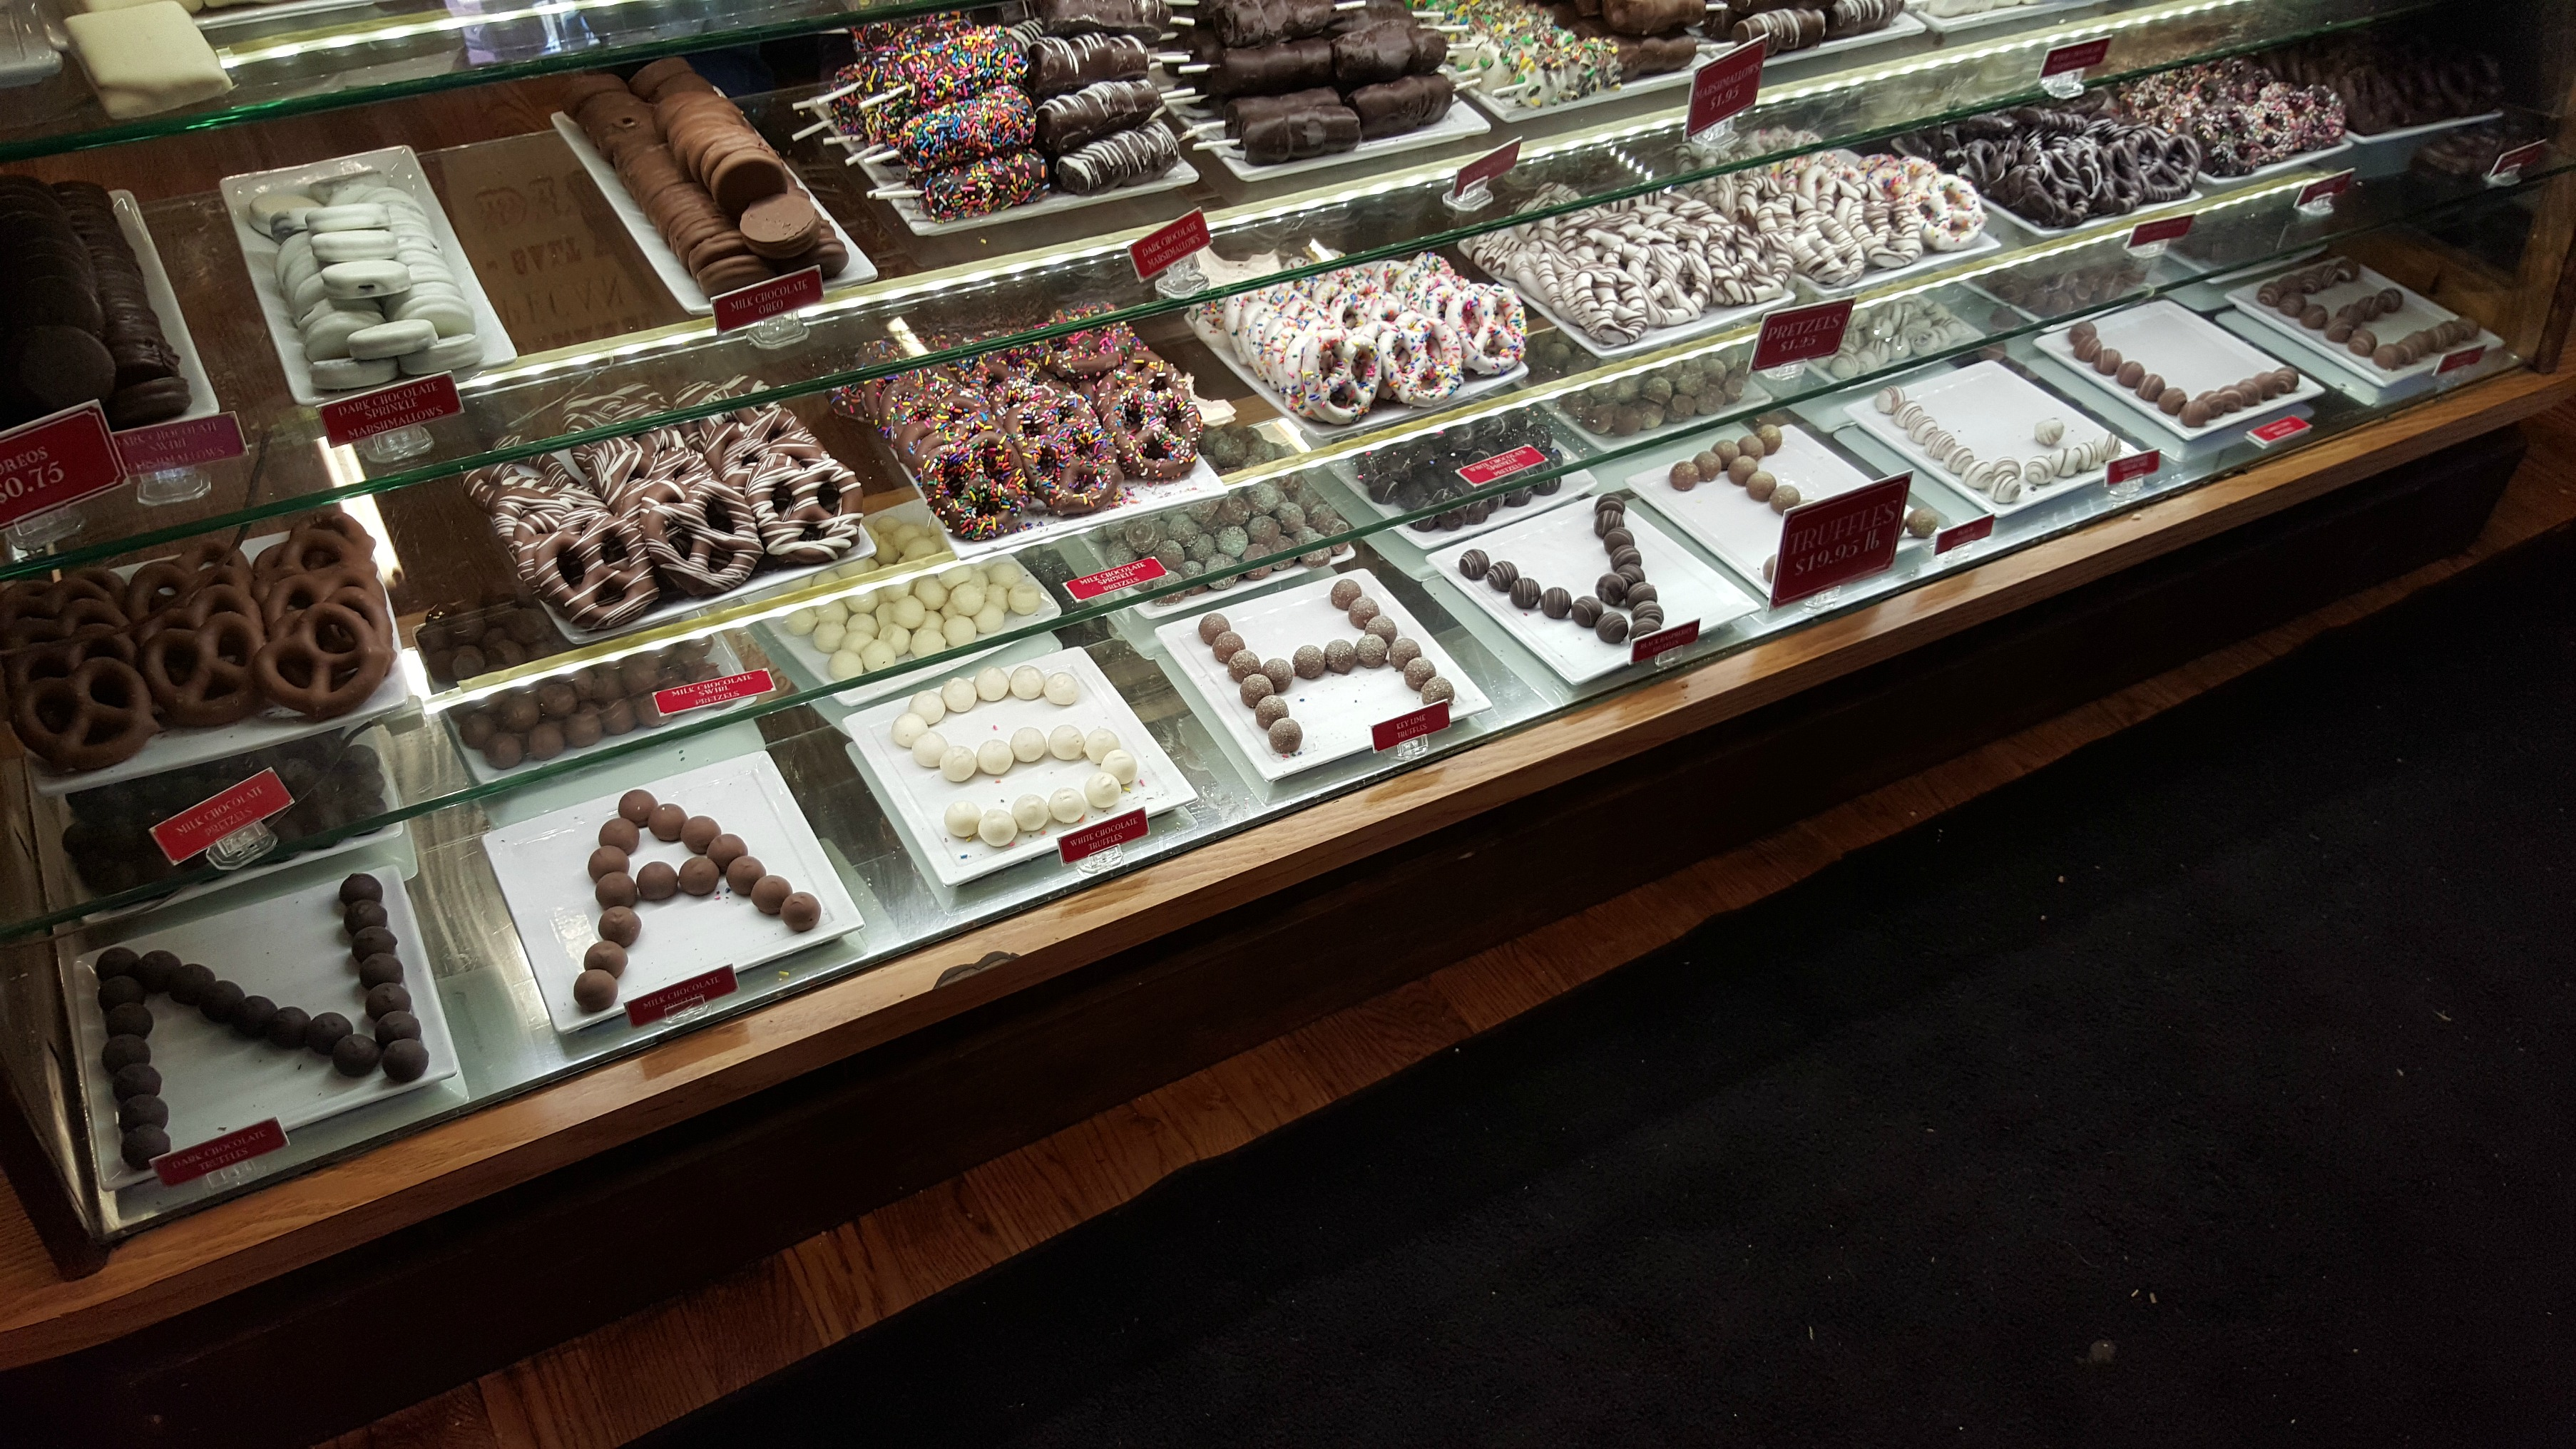 Savannah's Candy Kitchen Nashville